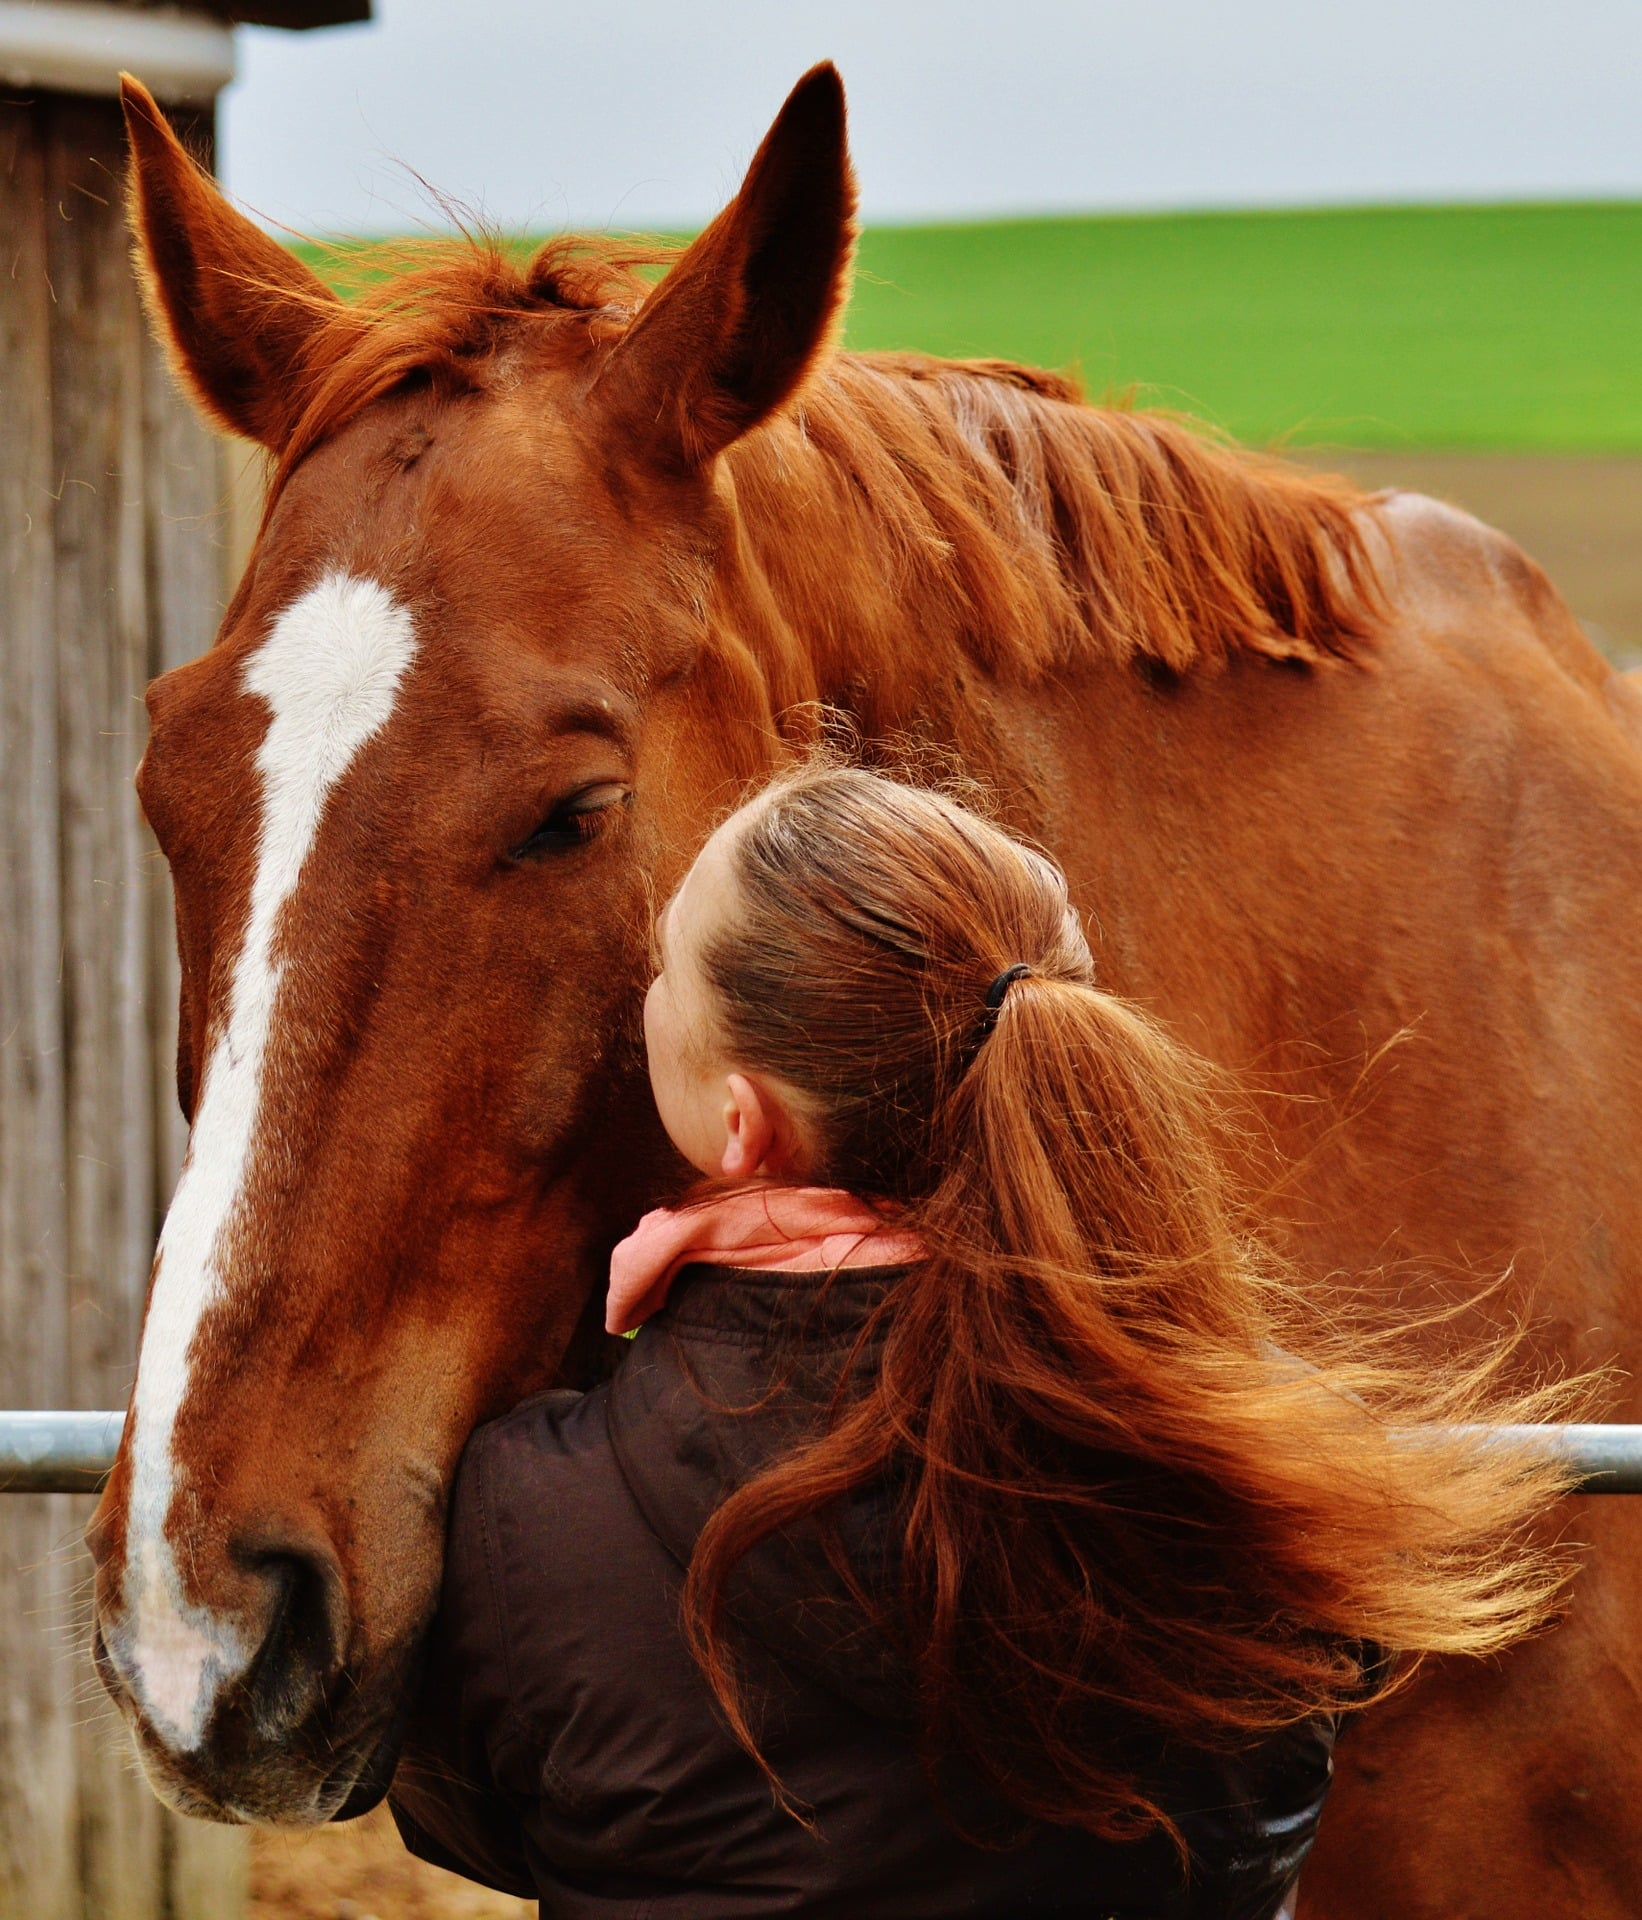 Should I buy my daughter a horse? horses boost your immune system